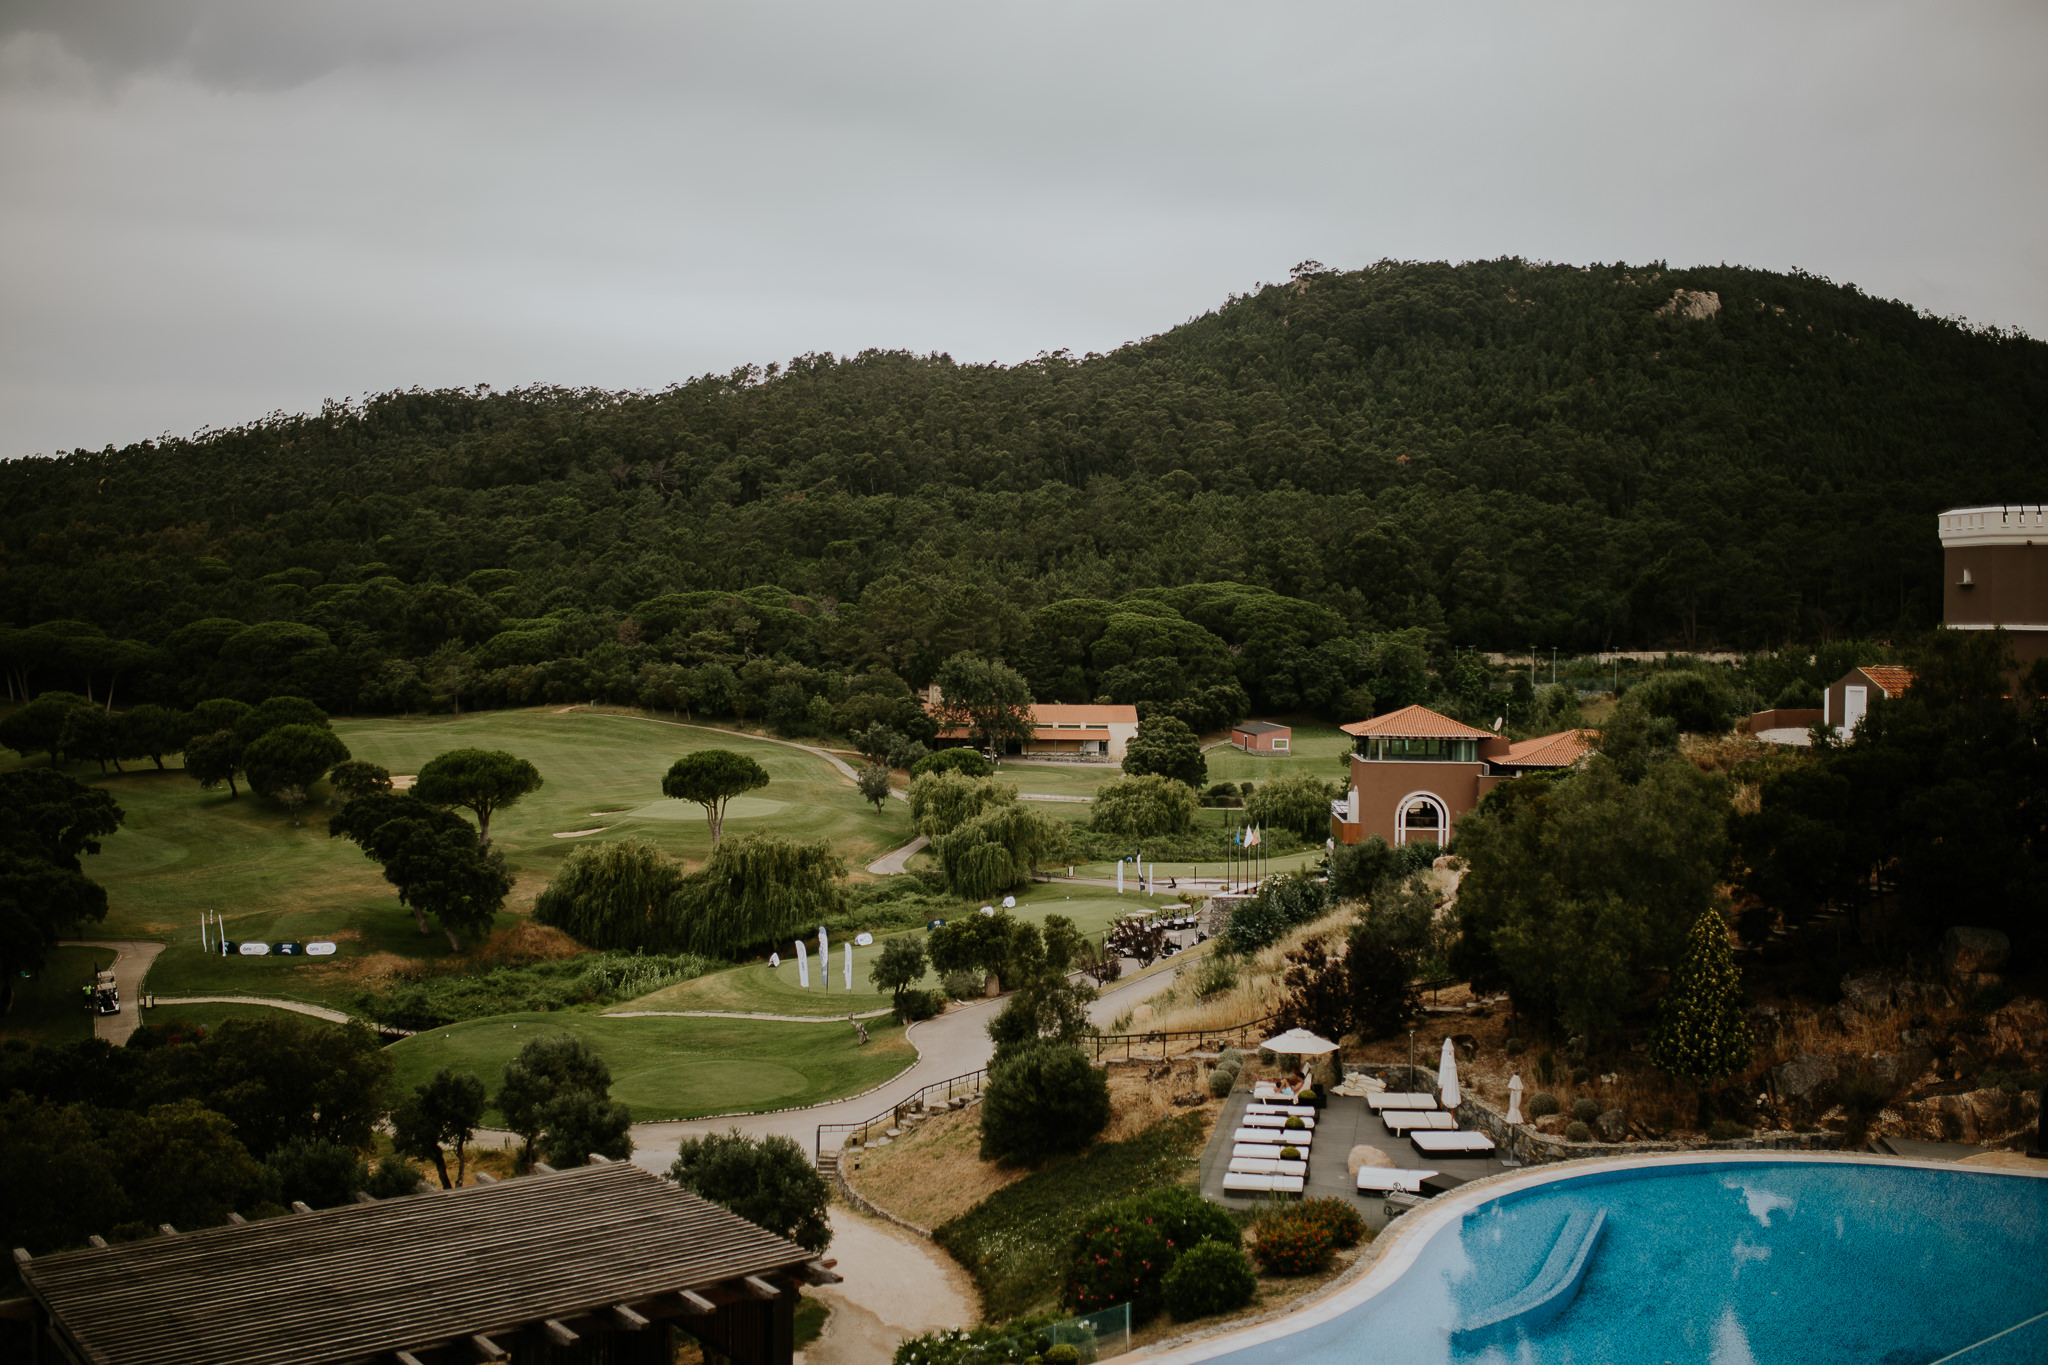 romina_thomas_destination_wedding_photography_fotografia_de_casamento_lisbon_sintra_penha_longa_resort-19